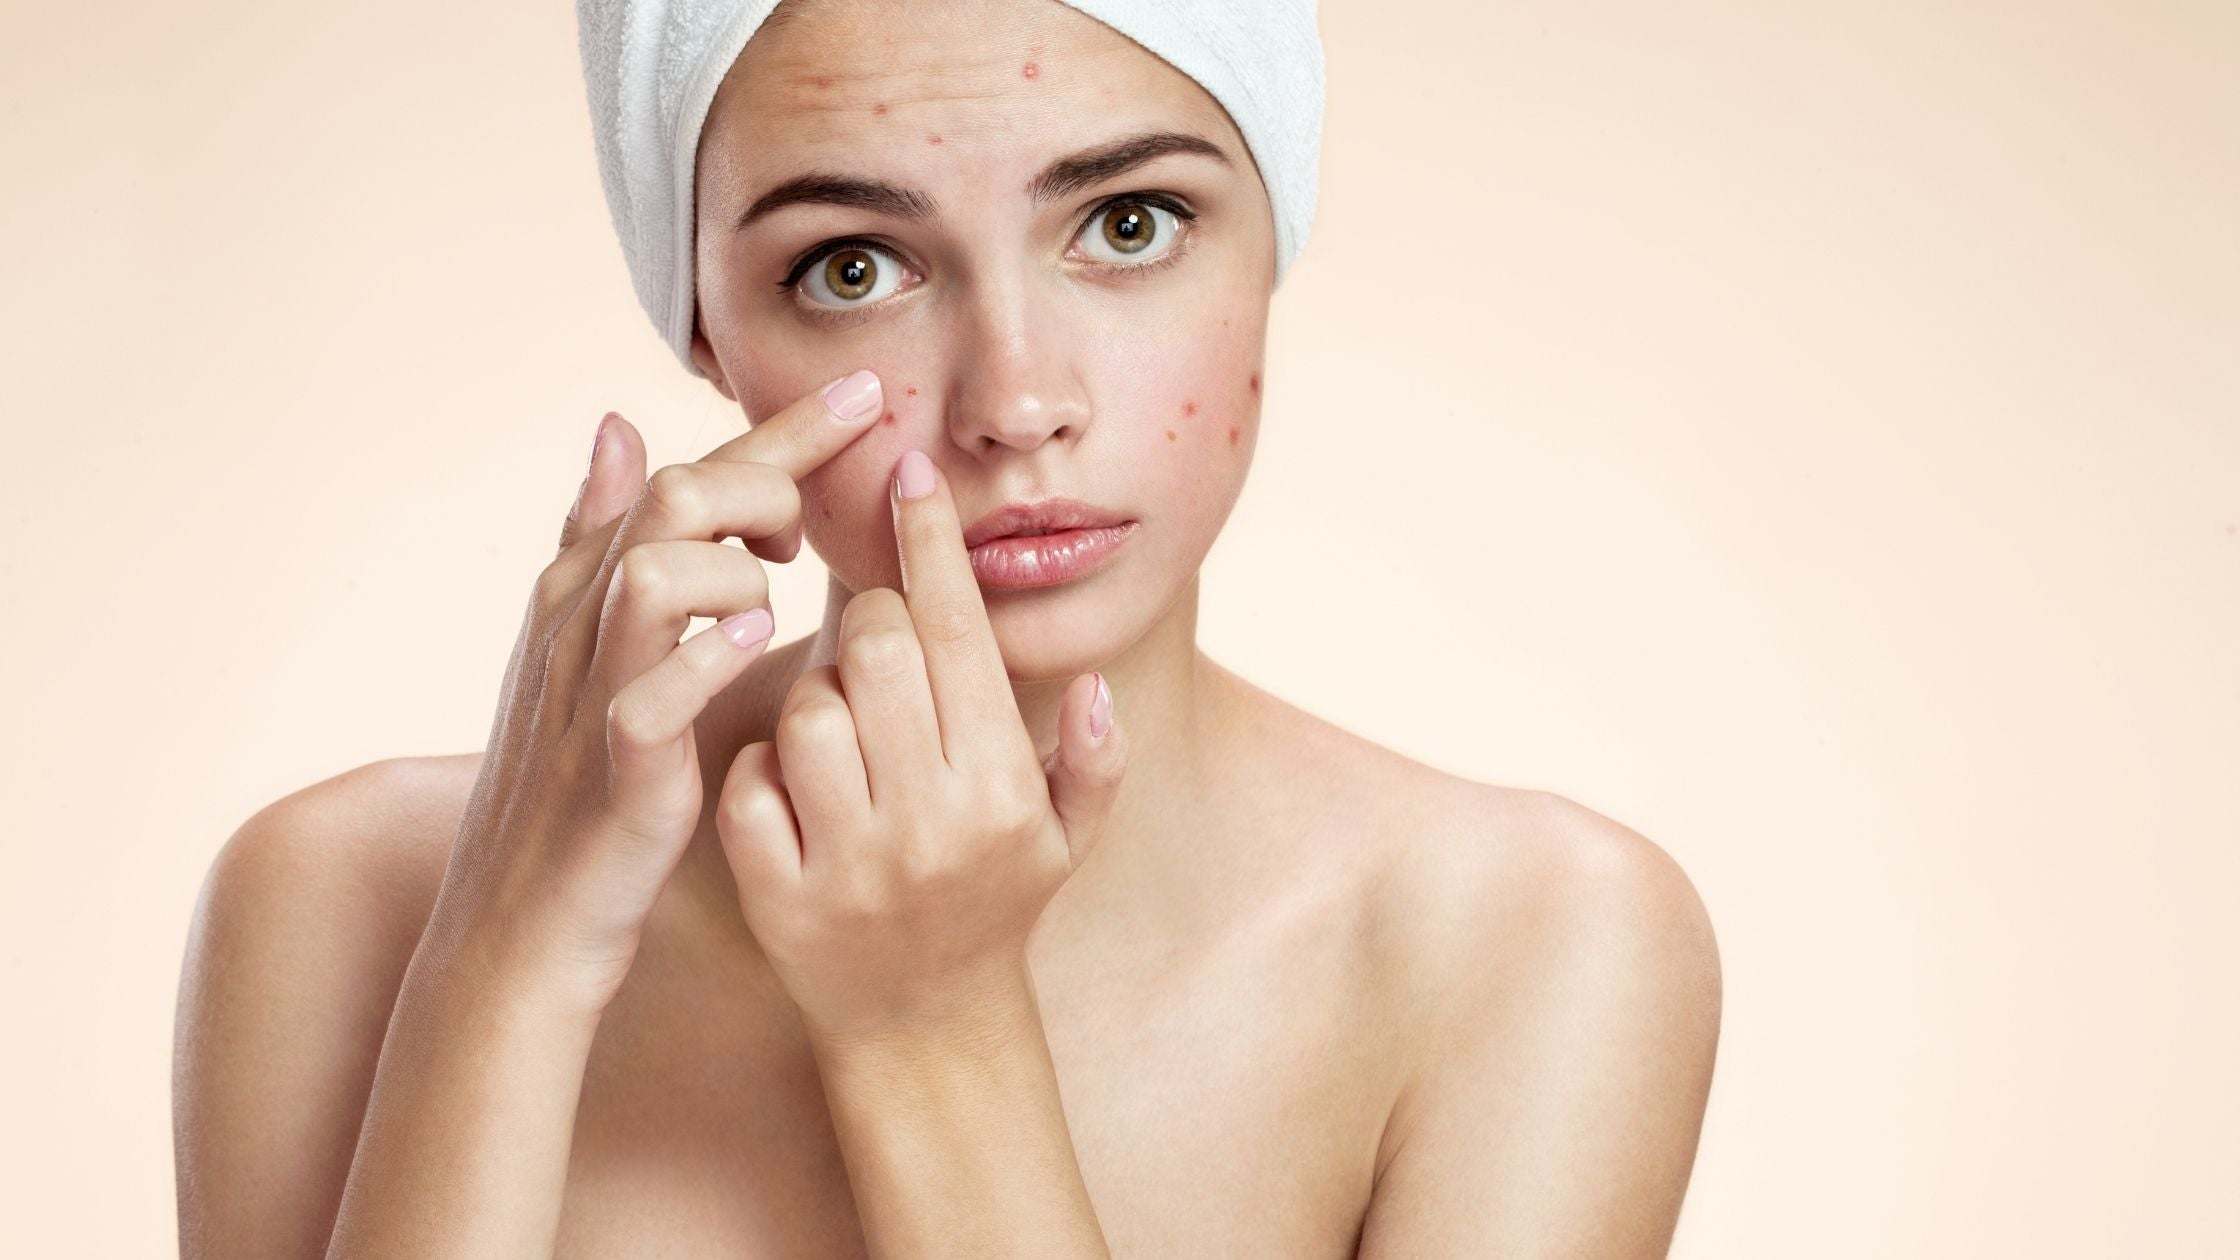 Can Acne Cause Hyperpigmentation?